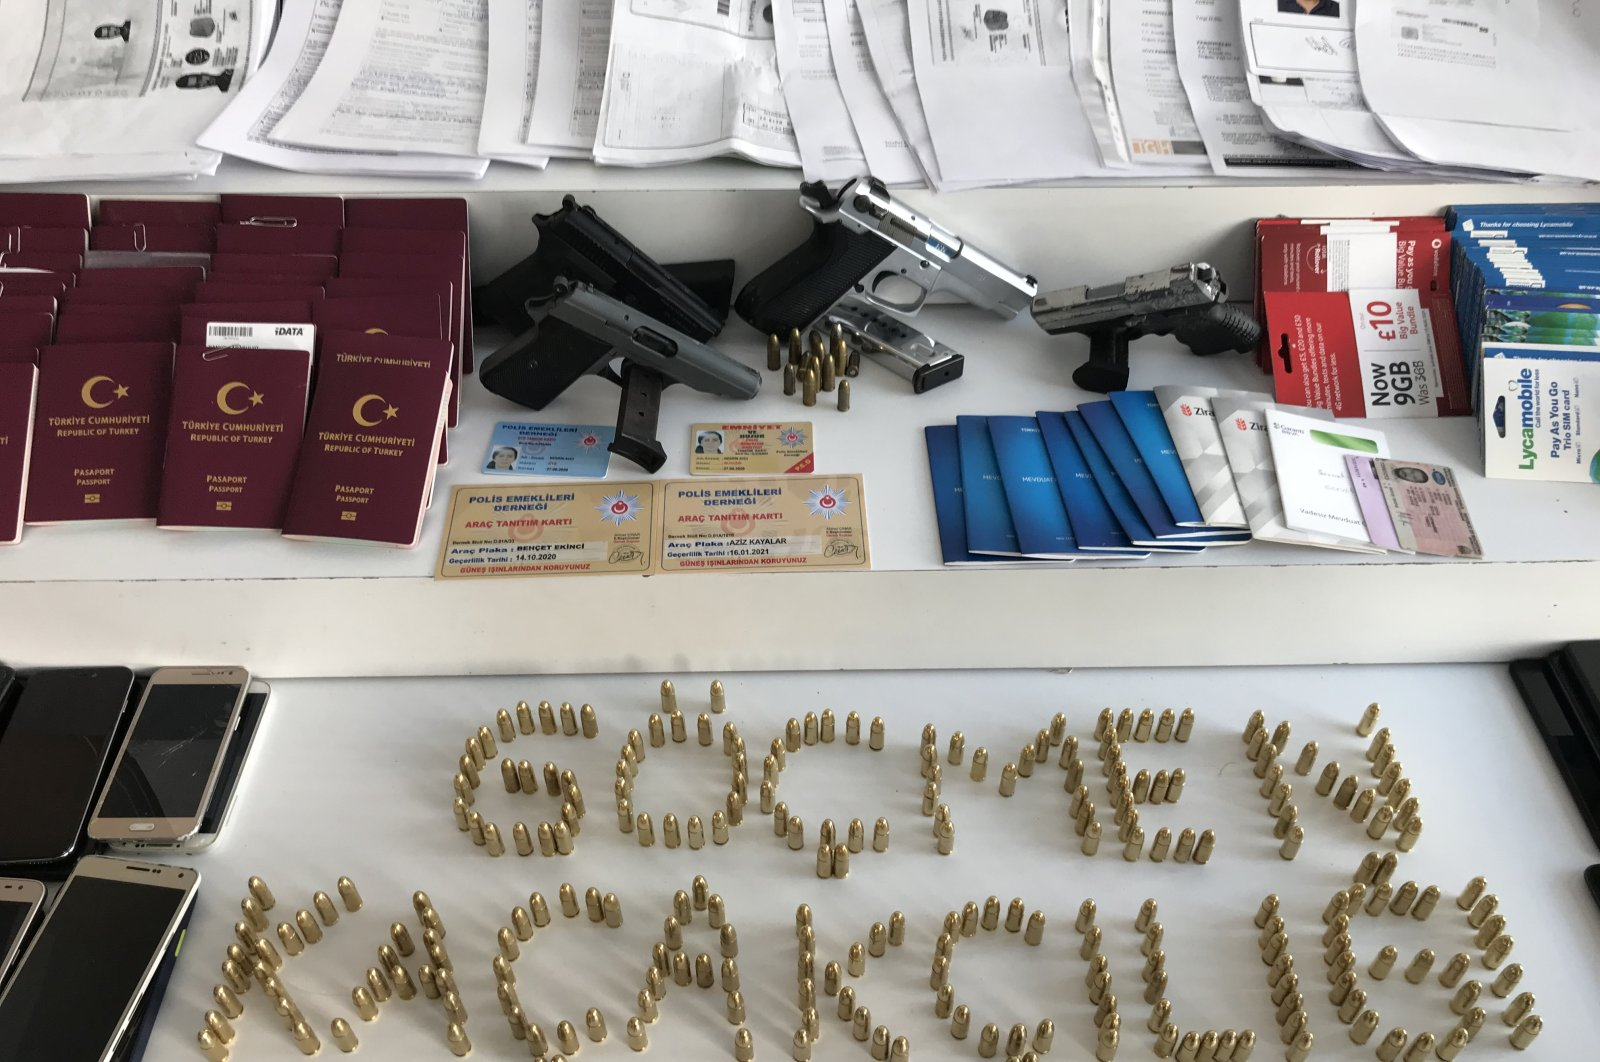 """Passports, guns and other materials seized from the """"Kabataşlar"""" gang on display at police headquarters in Istanbul, Turkey, July 21, 2020. (AA Photo)"""